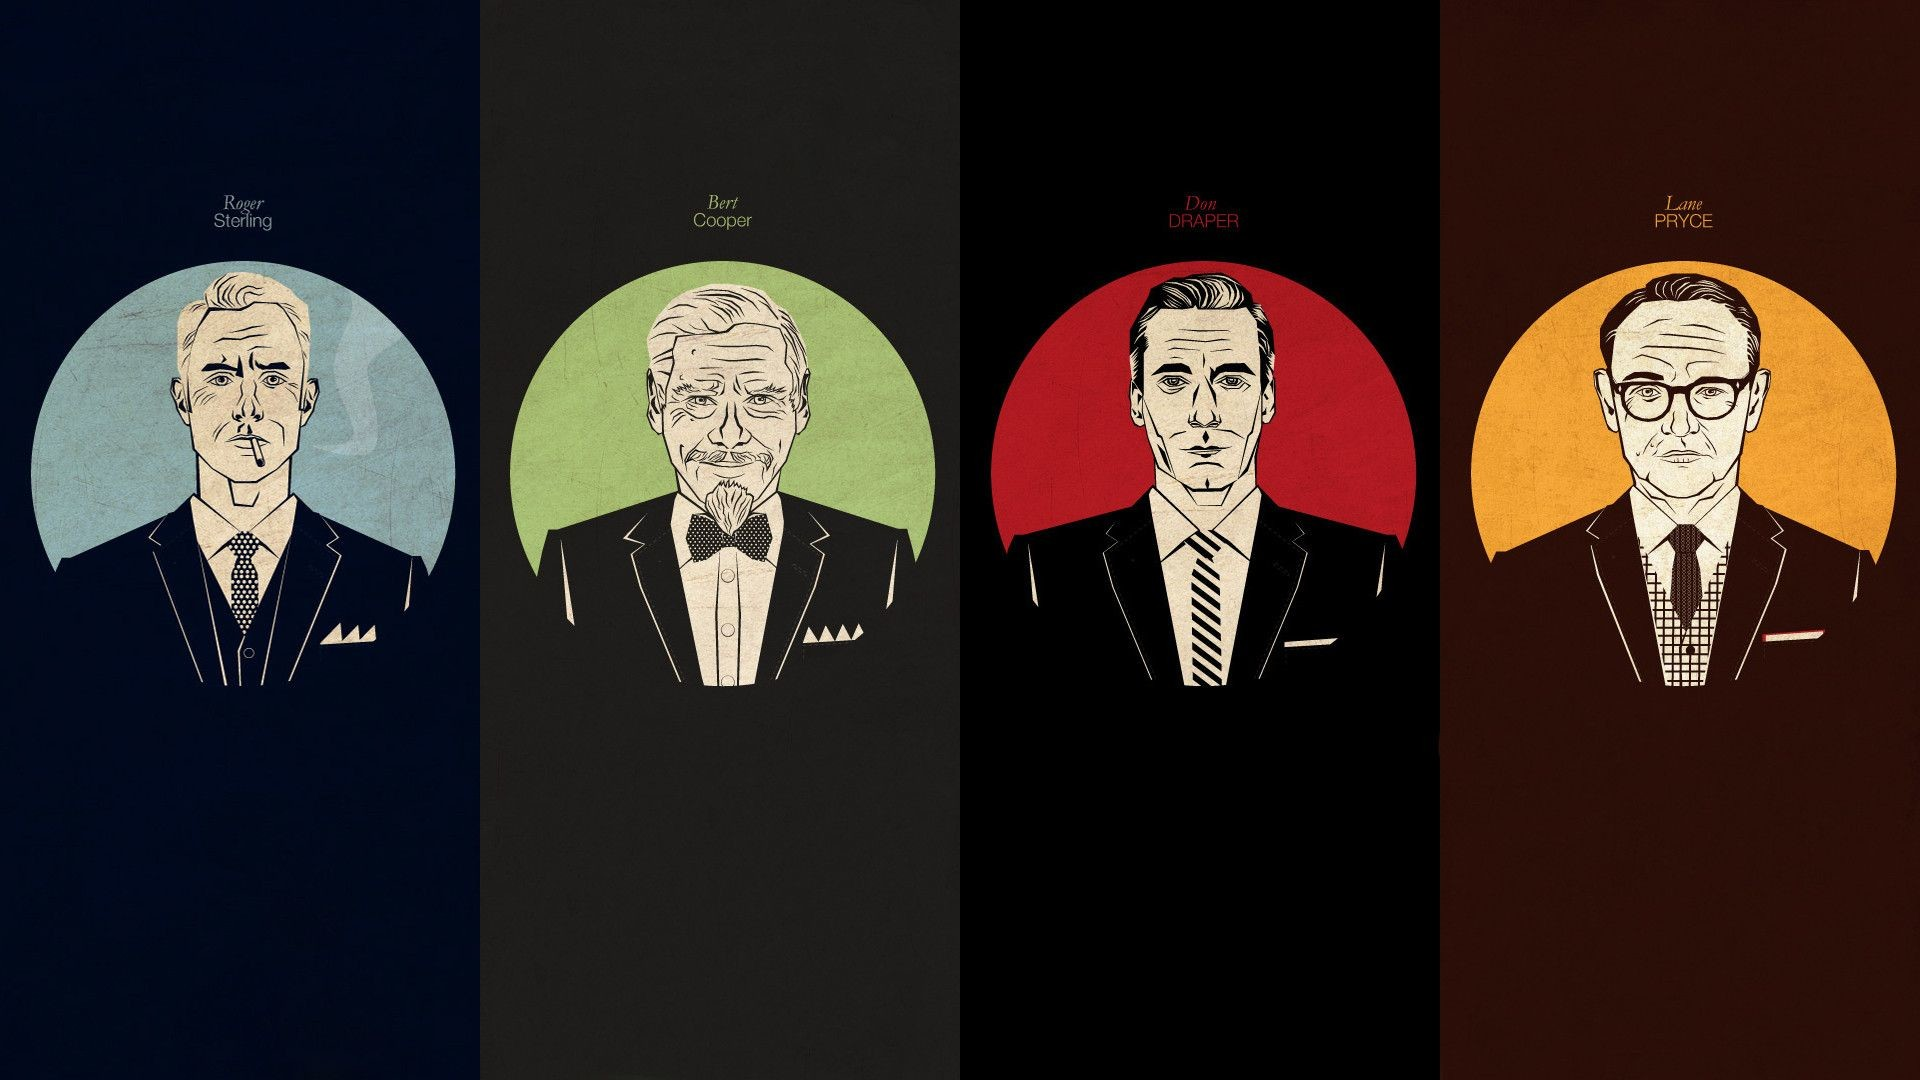 1920x1080 drag to resize or shift+drag to move Mad Men Characters, Man Wallpaper,